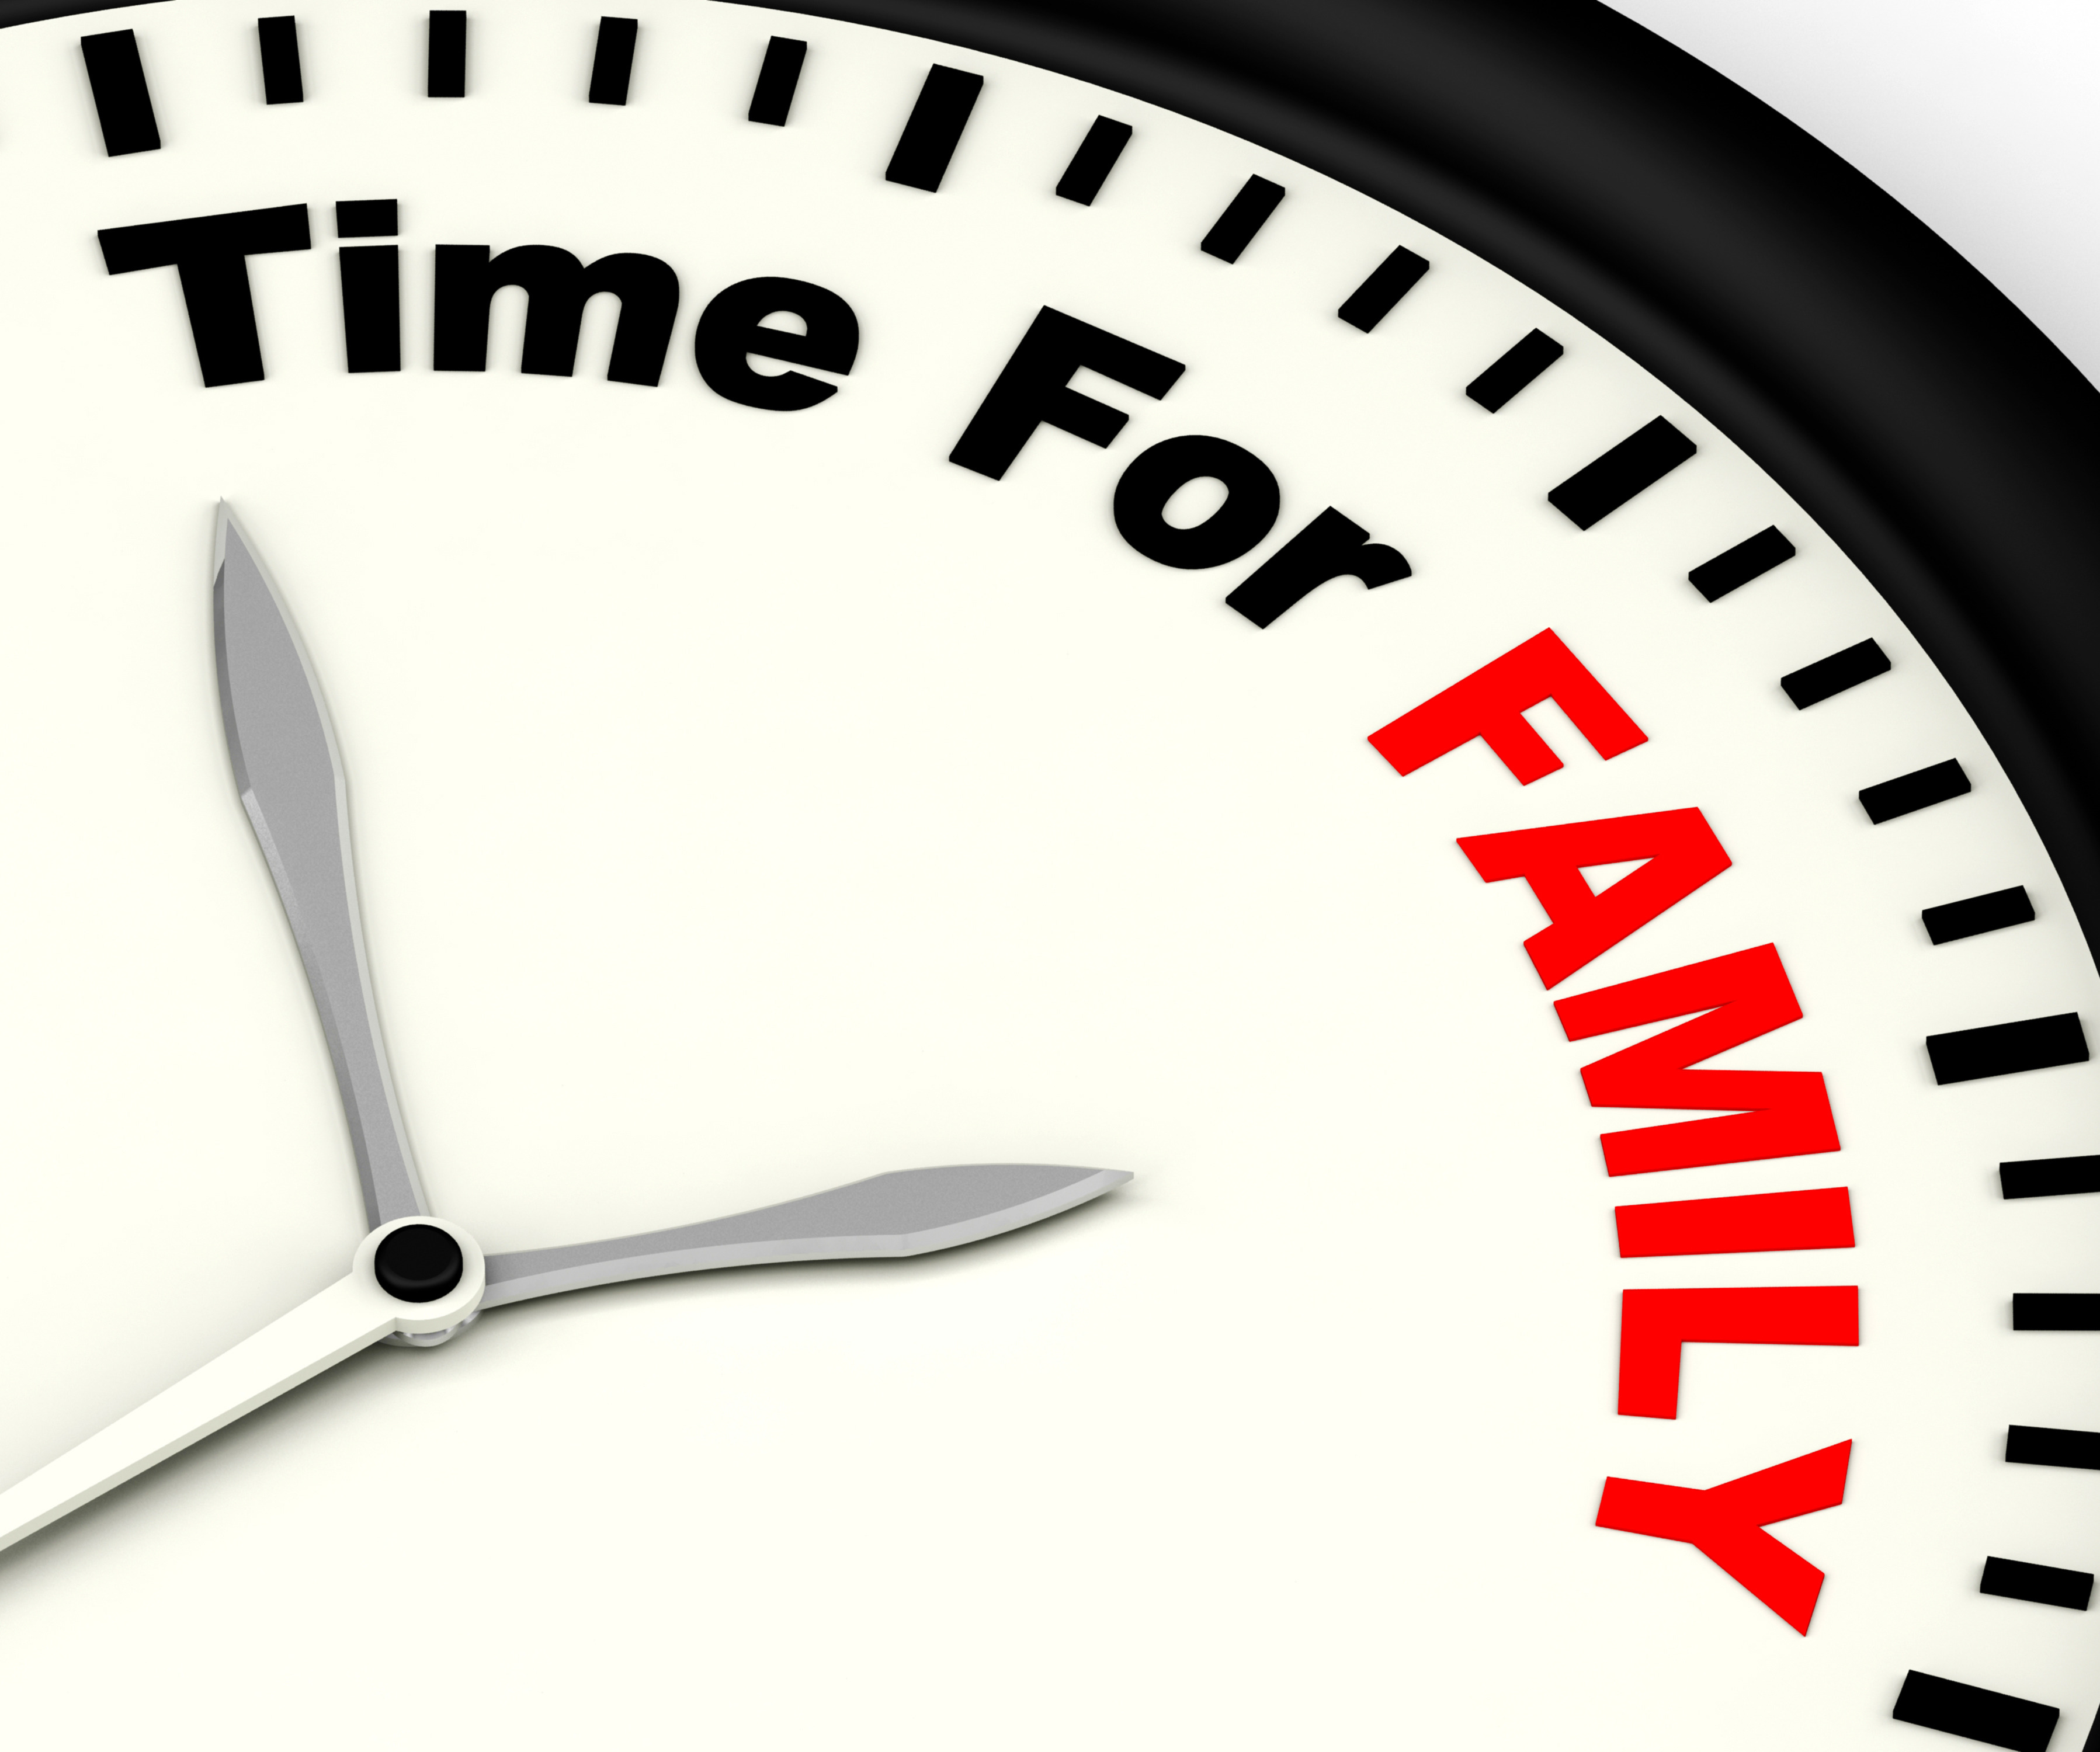 Time for family